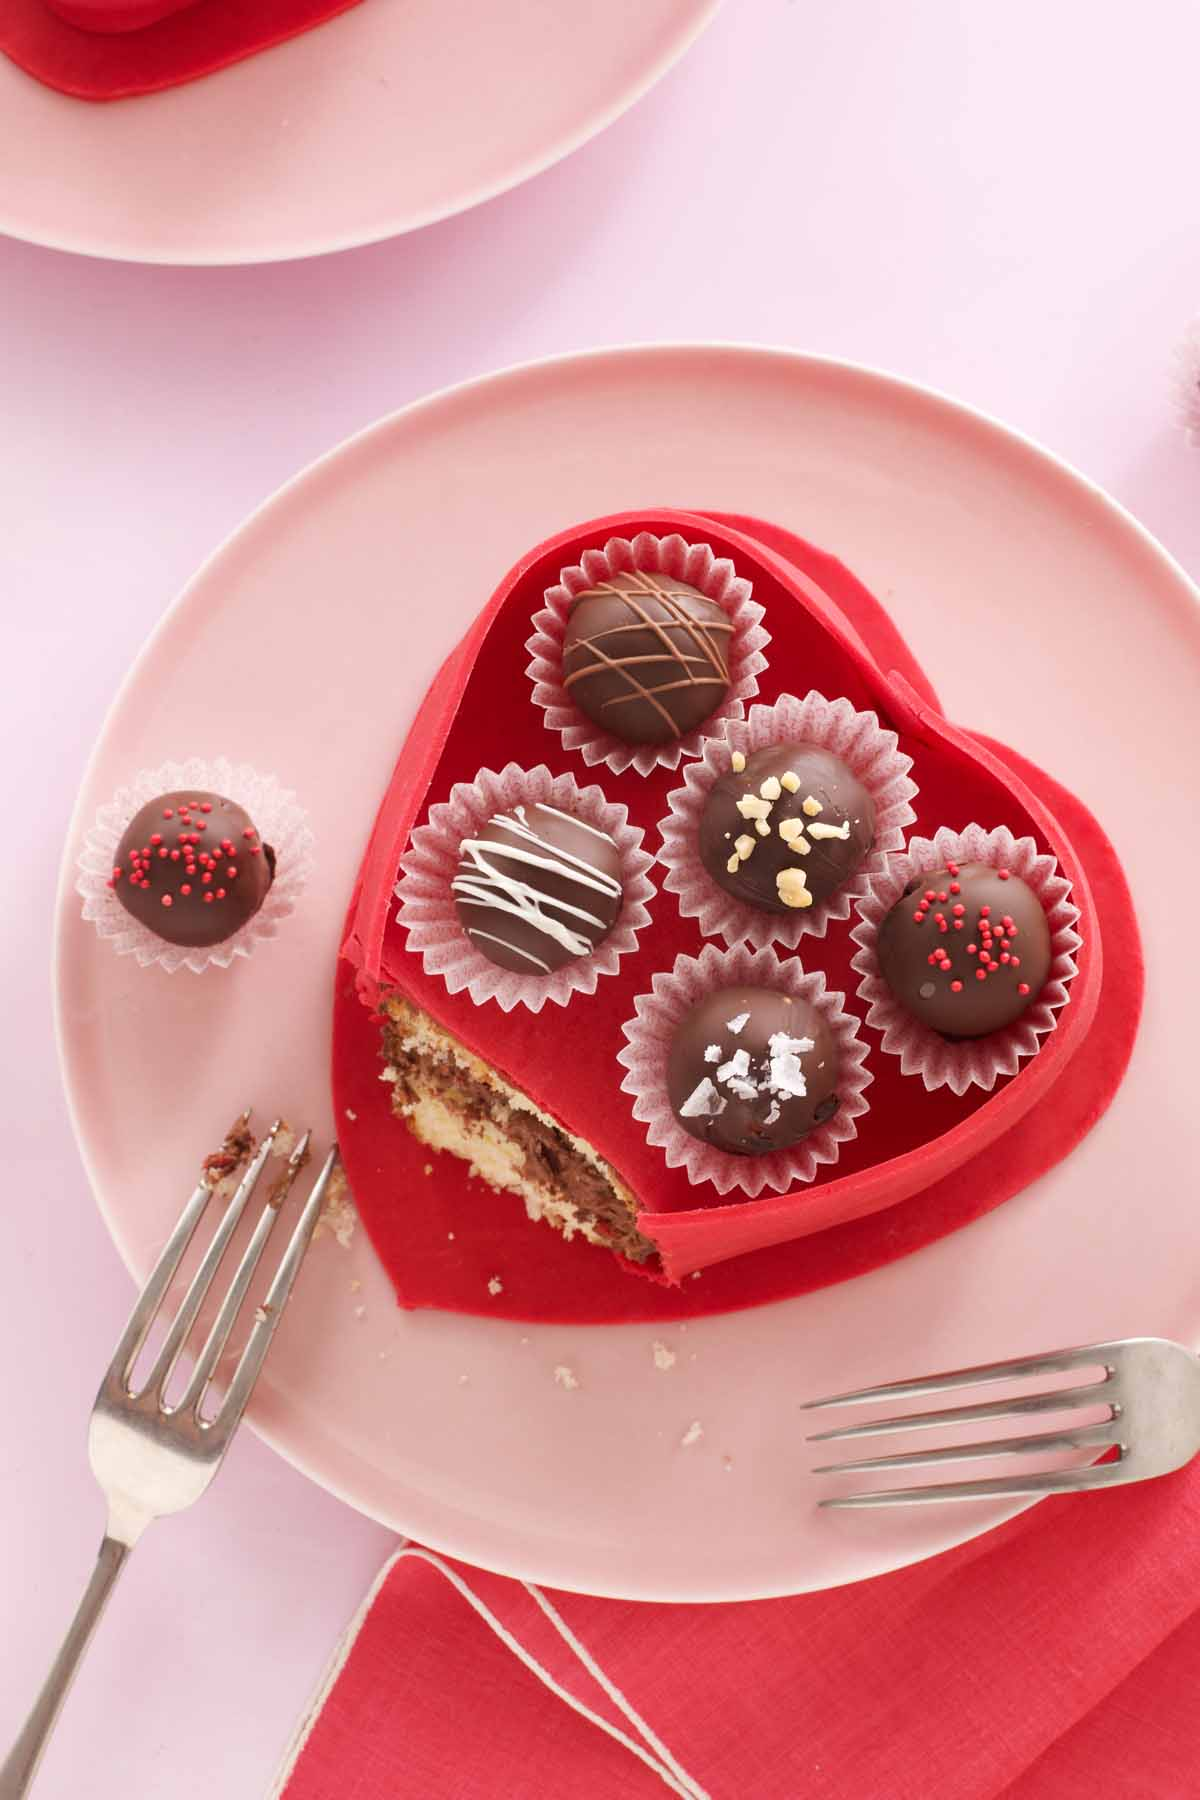 42 easy valentines day desserts best recipes for valentines day sweets - Valentines Day Sweets